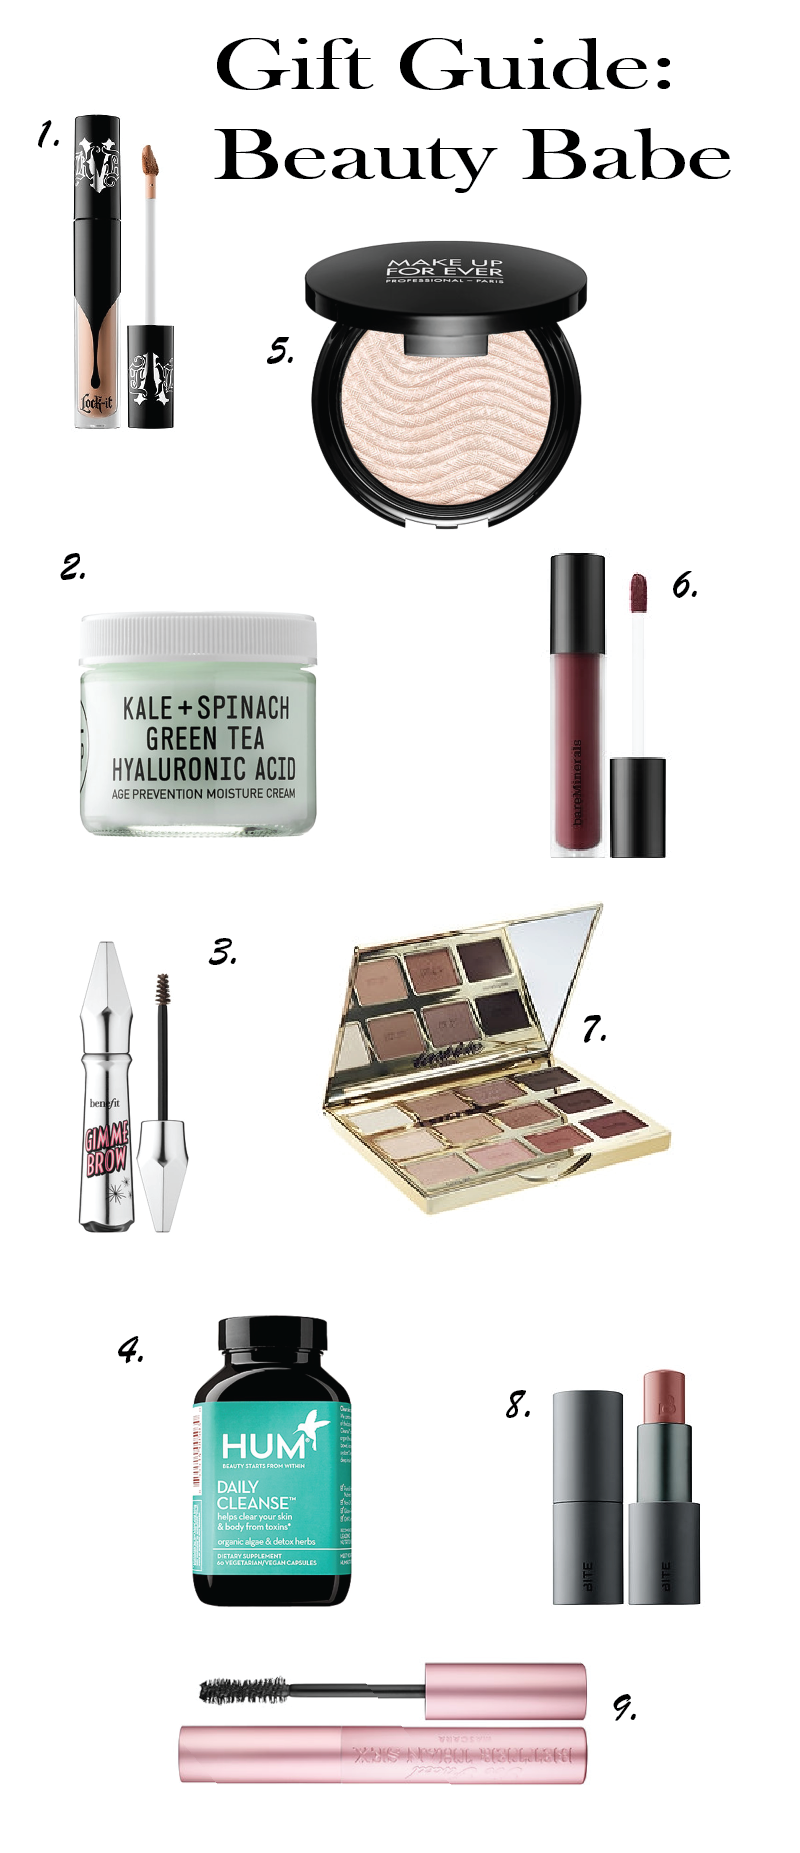 Gift Guide: Beauty Babe